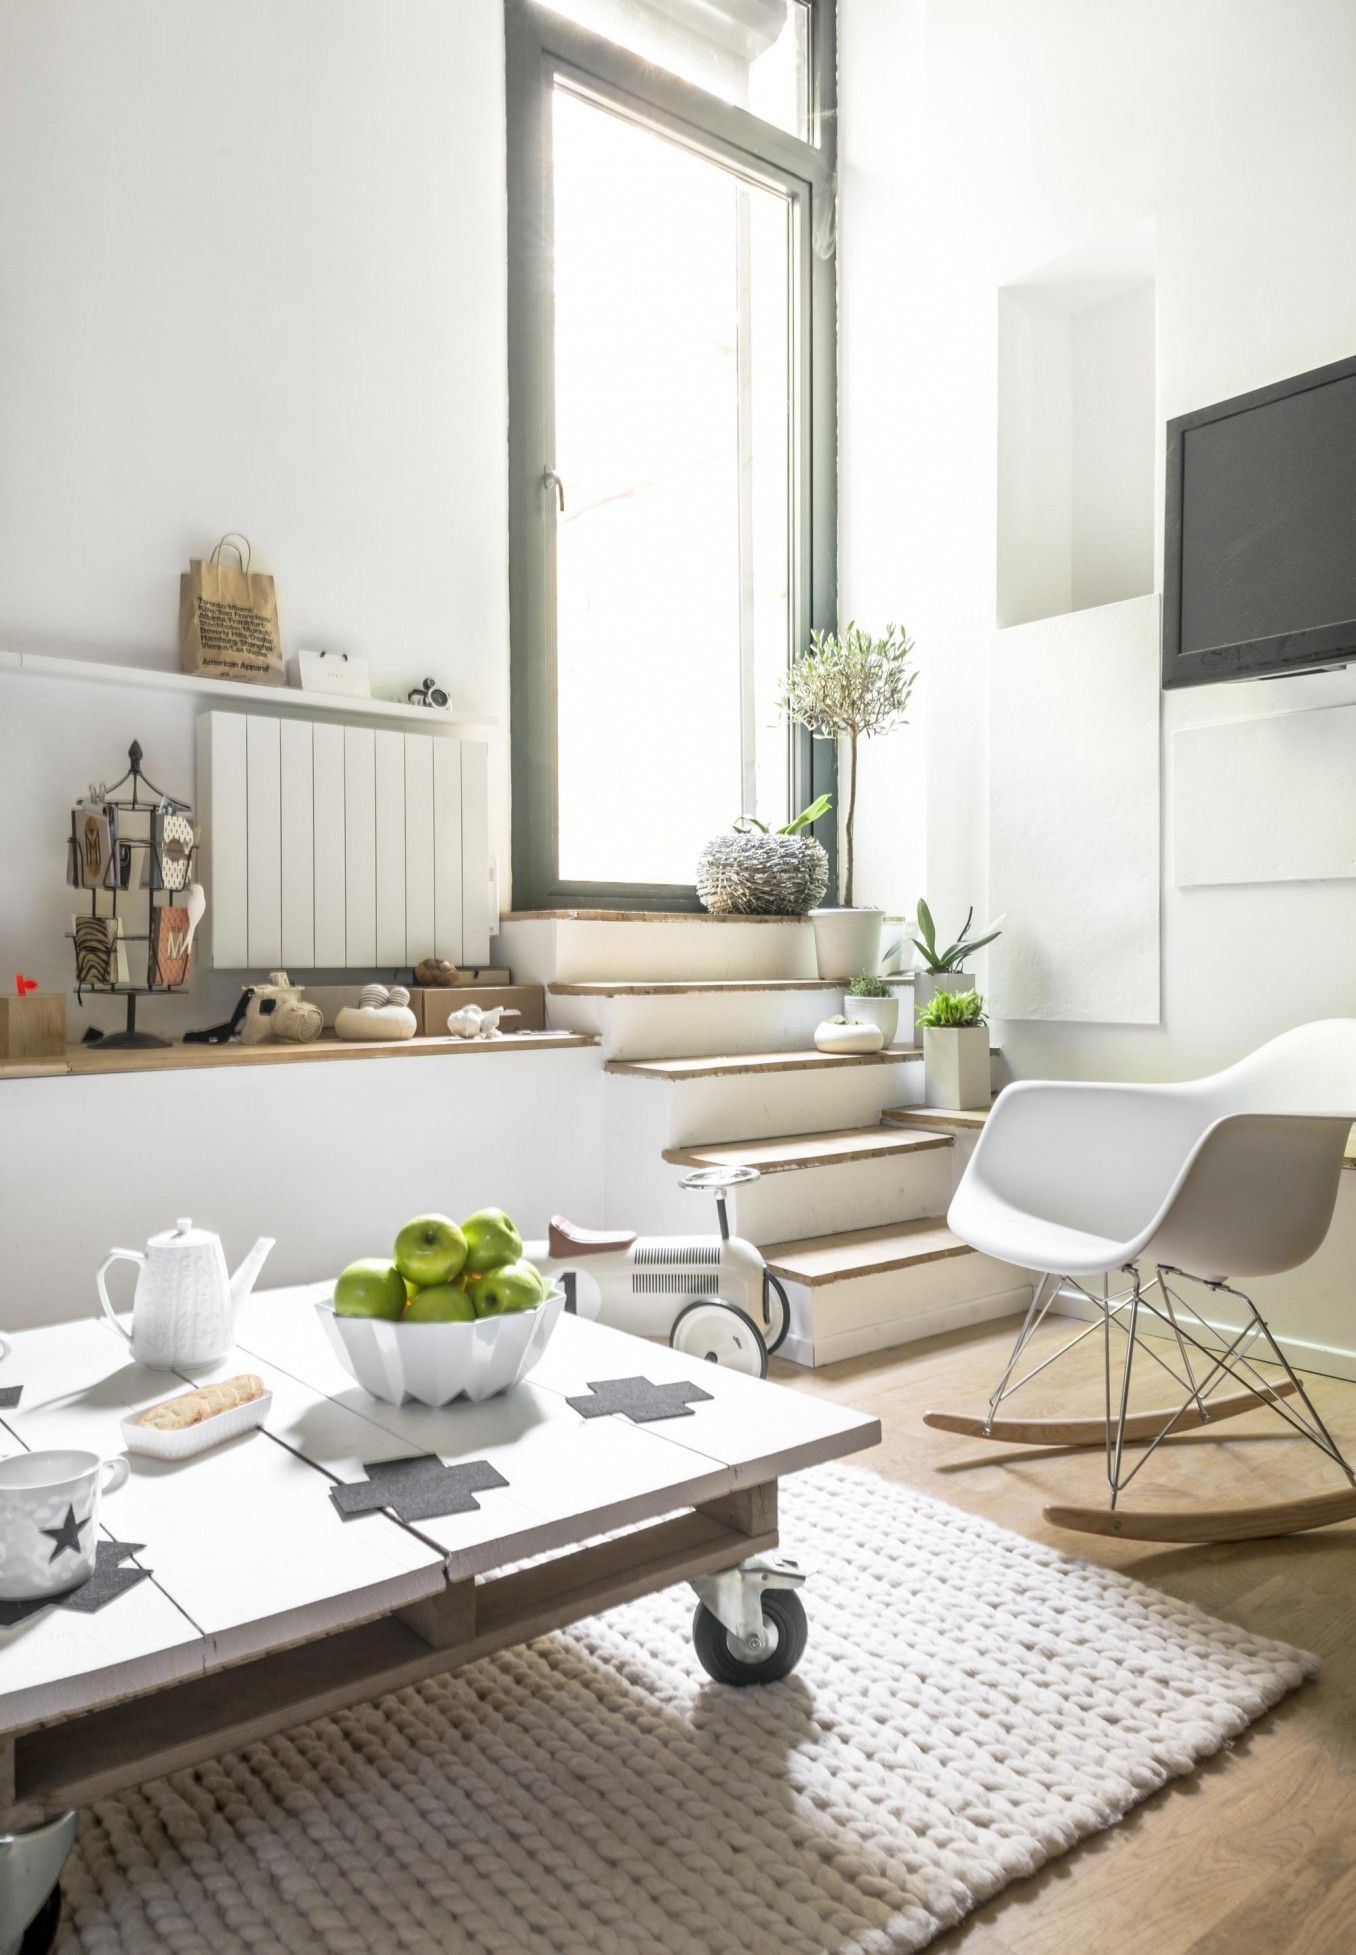 Big ideas for small spaces | Small spaces, Spaces and Interiors